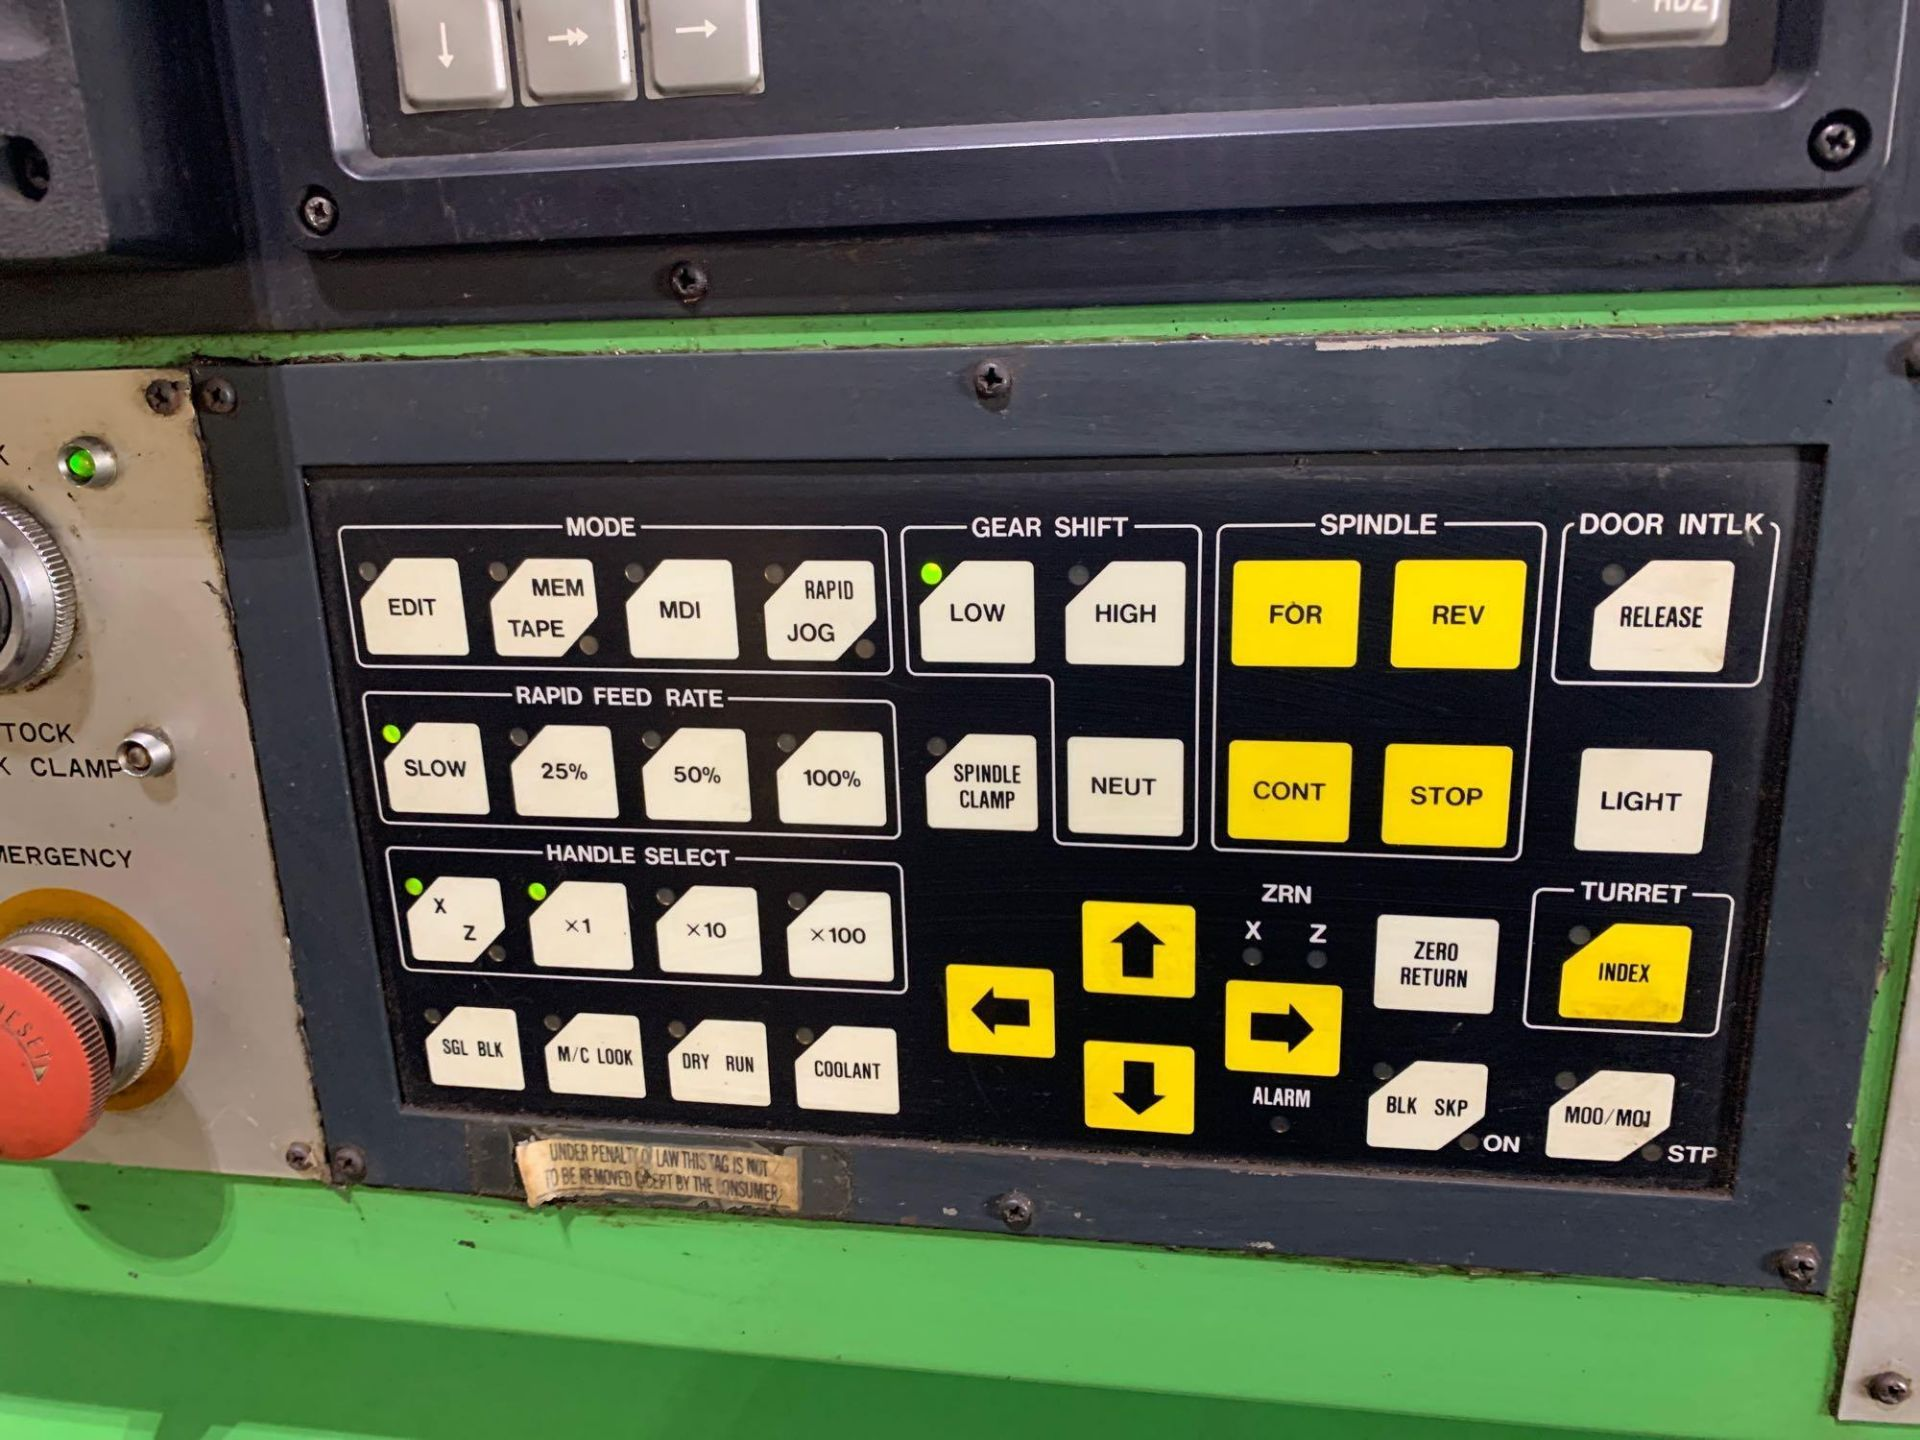 IKEGAI AX-15Z CNC Slant Bed Turning Center Serial Number: 50130V 2-Axis Machine Fanuc 10T Control 12 - Image 9 of 18